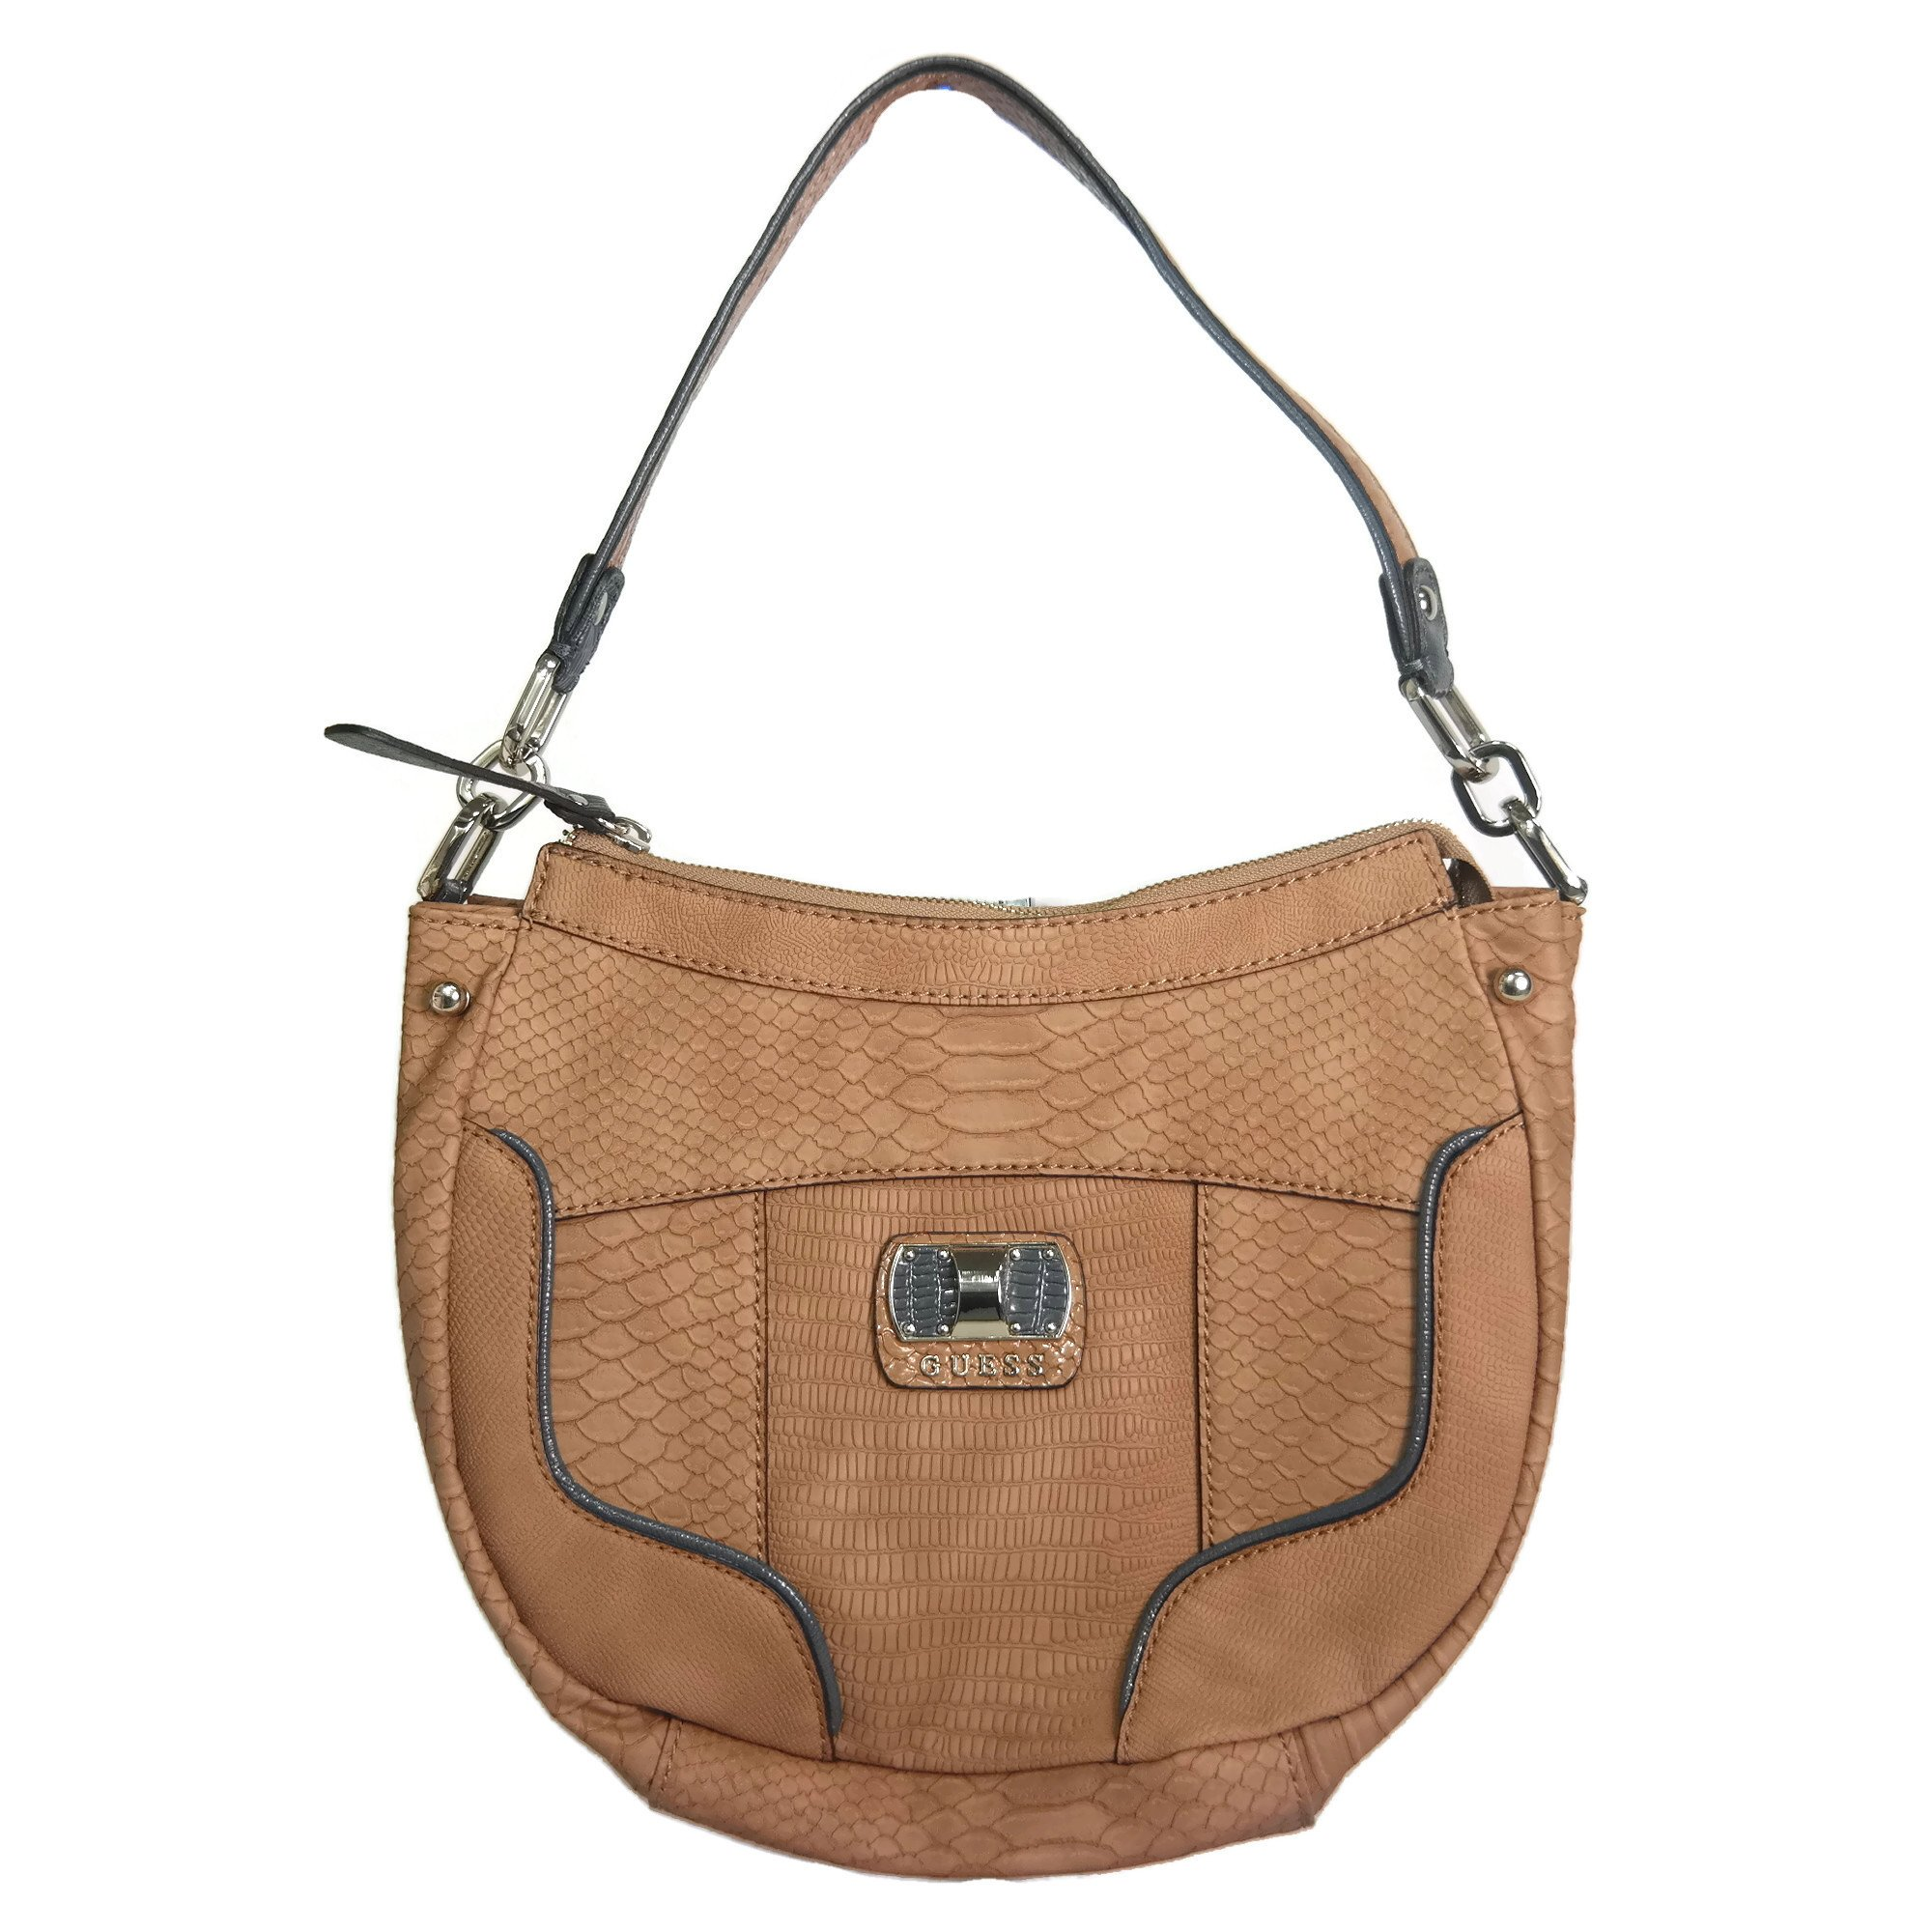 Guess Anafi Hobo Handbag Tan Multi, PG376209